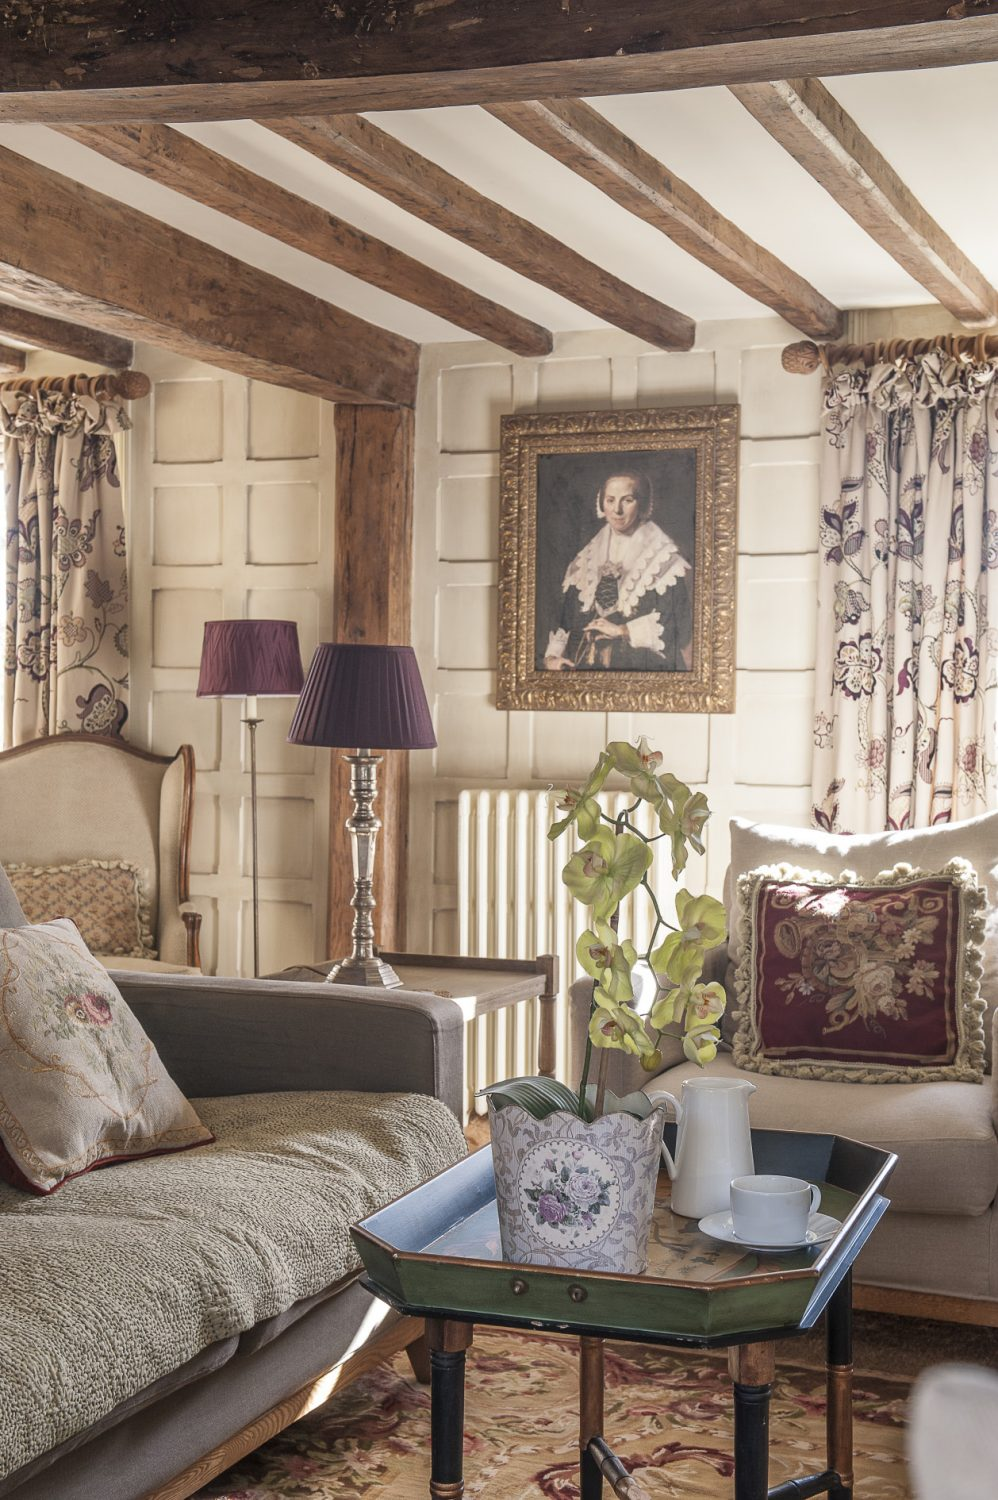 In the drawing room heavily embroidered Sanderson curtains complement the Elizabethan panelling